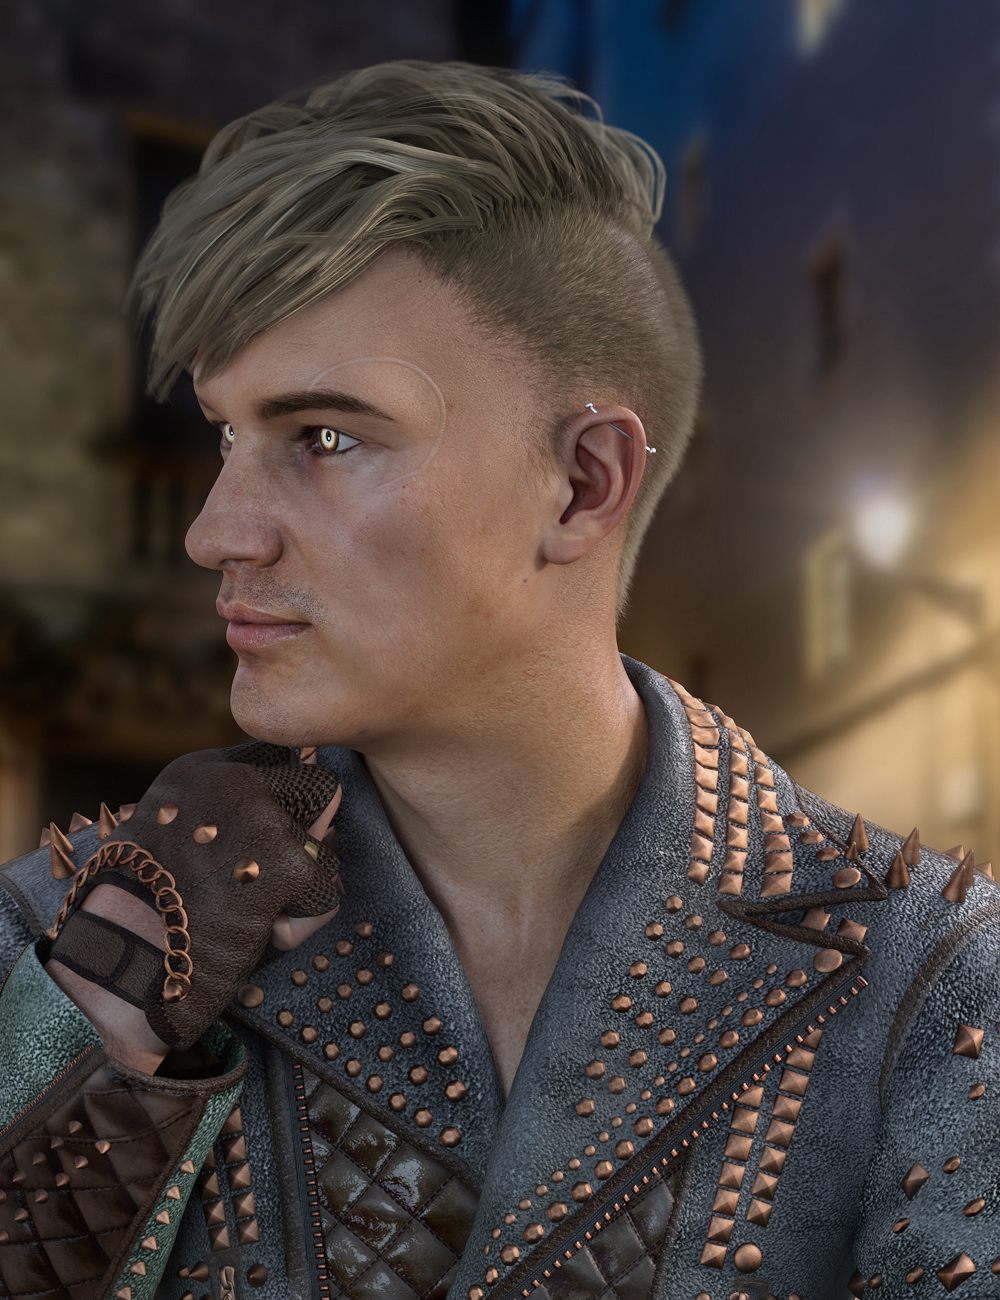 Amato Hair for Genesis 8 Males by: Propschick, 3D Models by Daz 3D